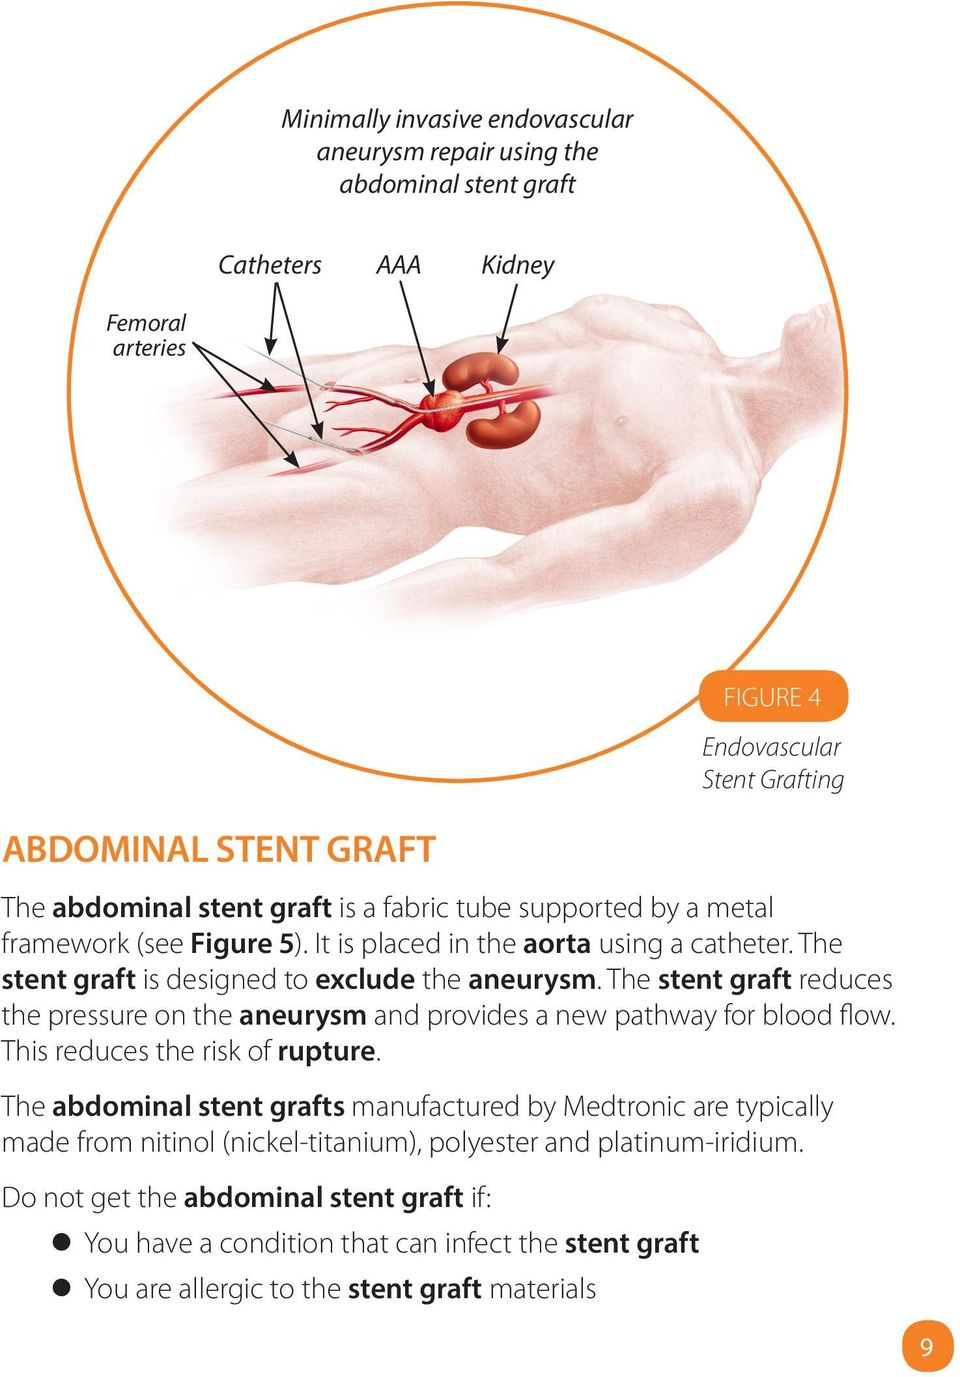 The stent graft reduces the pressure on the aneurysm and provides a new pathway for blood flow. This reduces the risk of rupture.